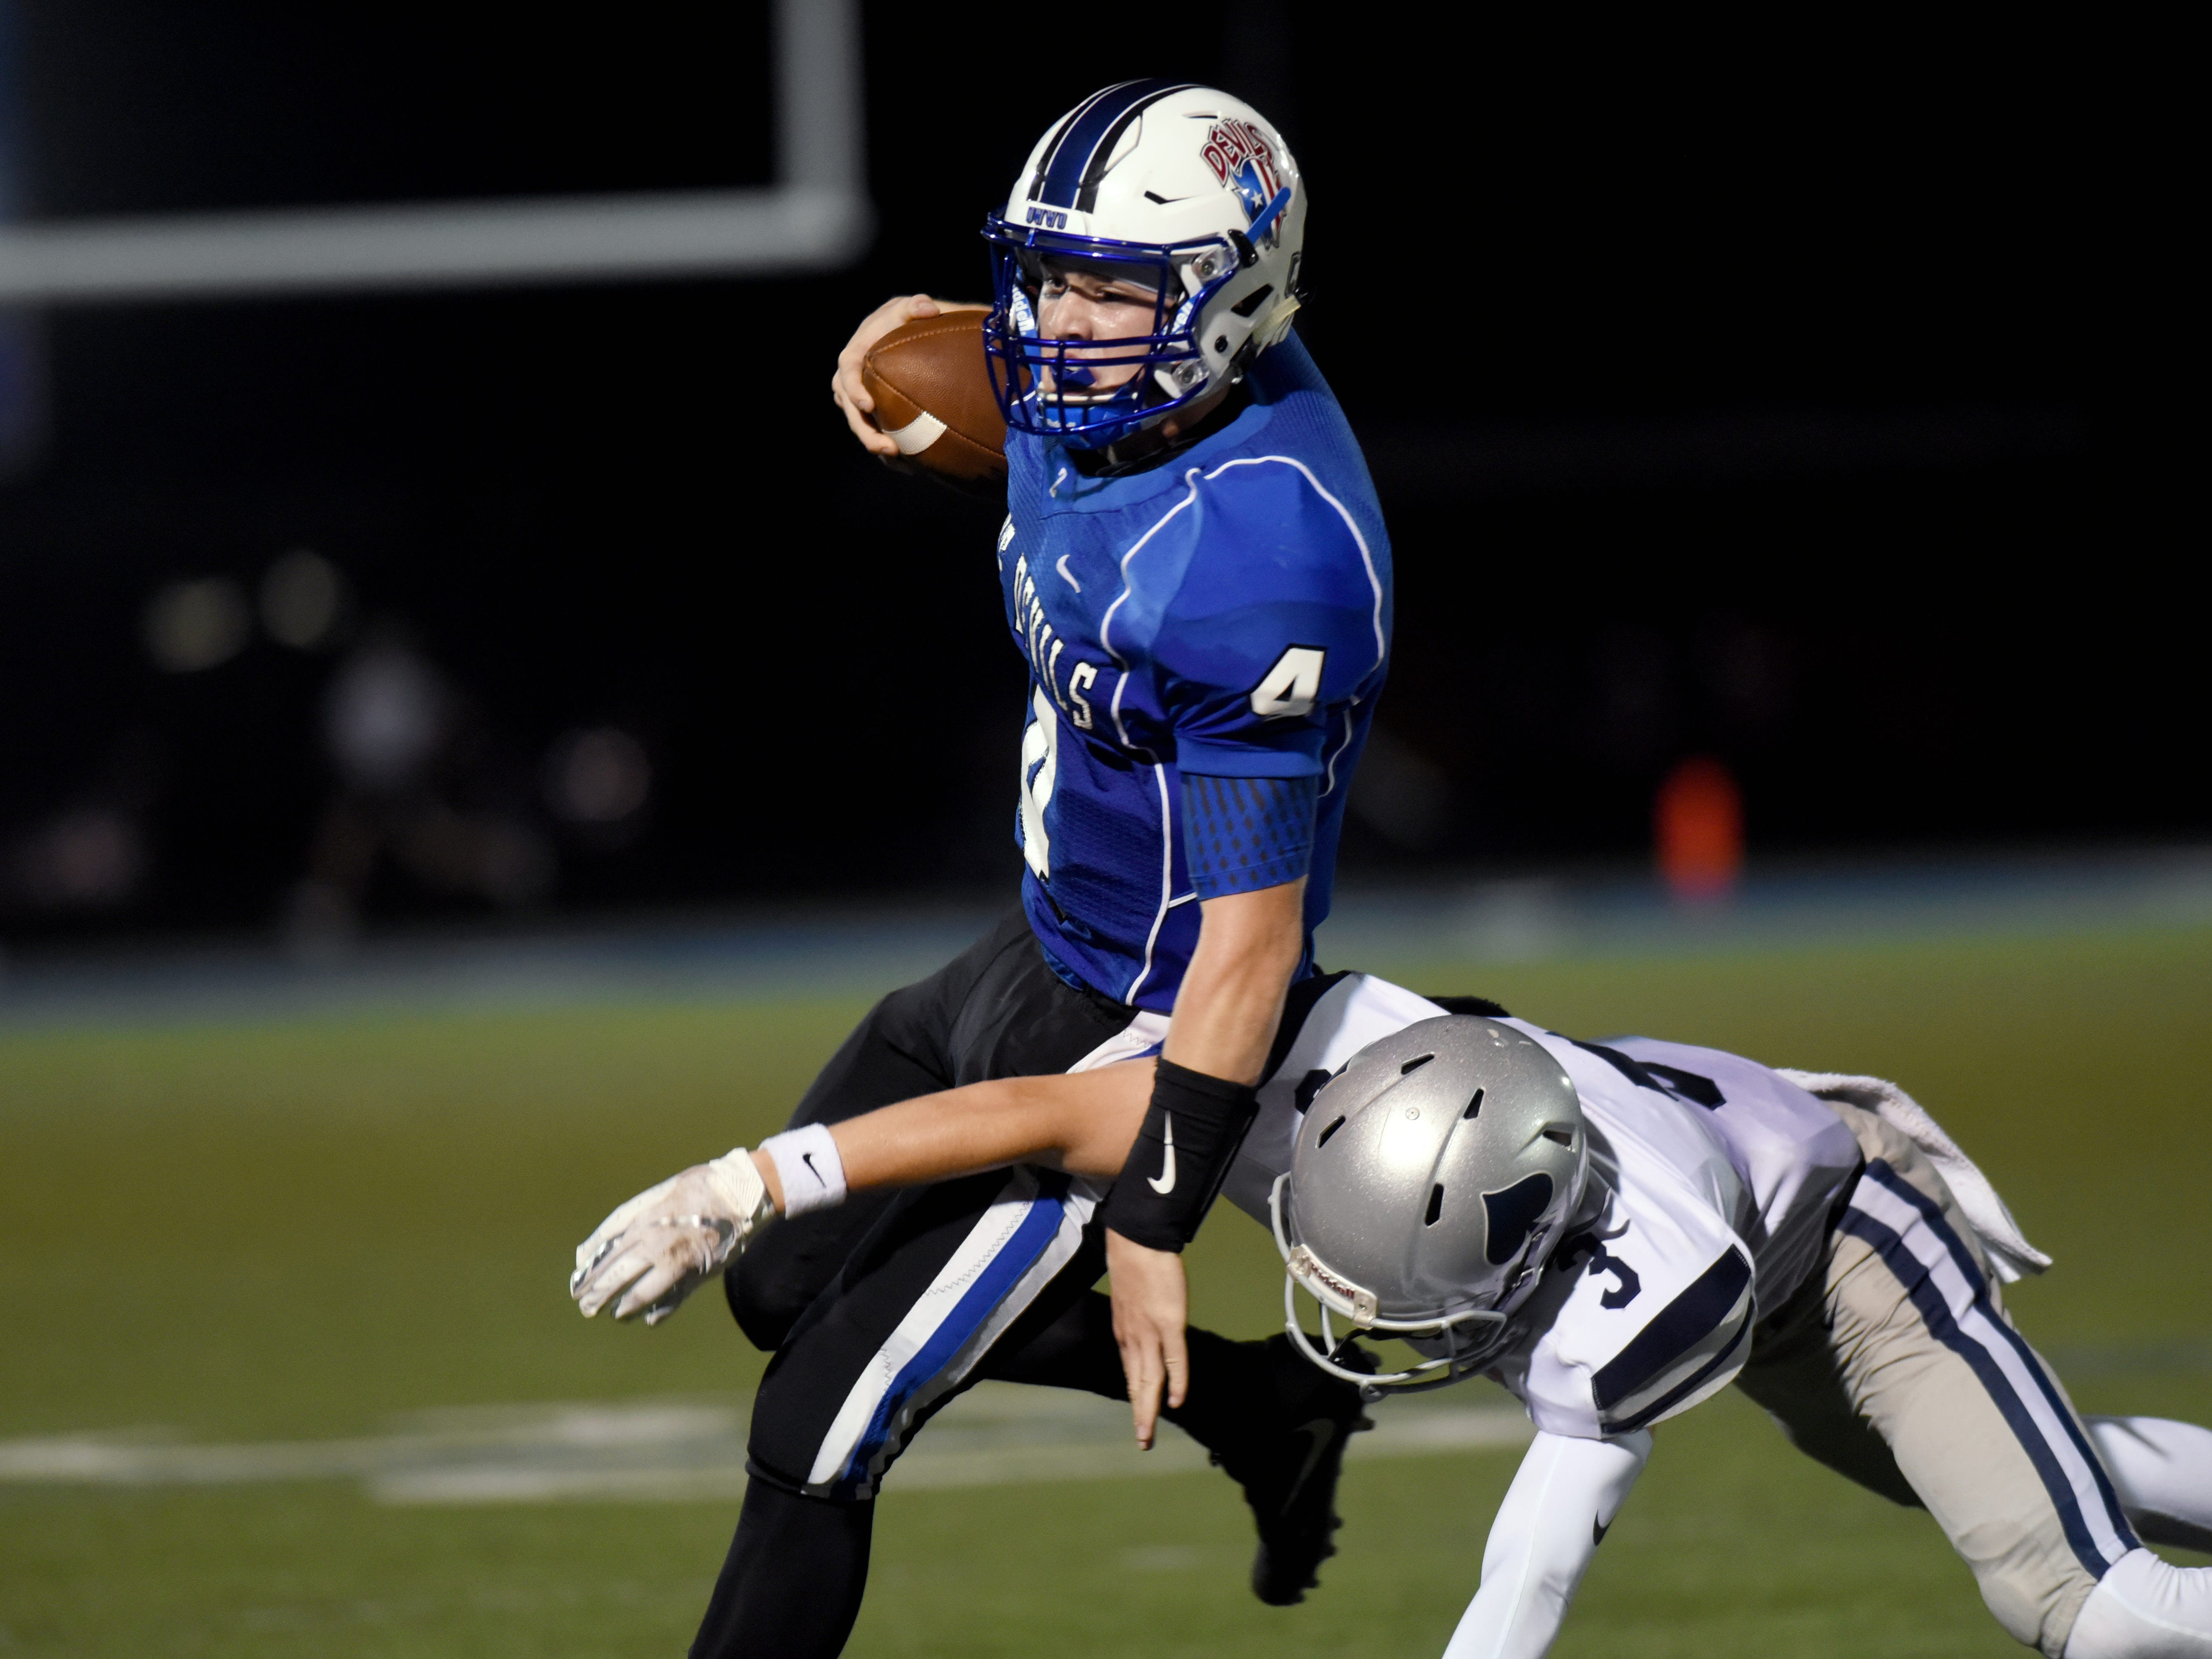 Ben Everson scrambles for a first down during the fourth quarter of Zanesville's 17-14 loss to Granville on Friday night at John D. Sulsberger Memorial Stadium.